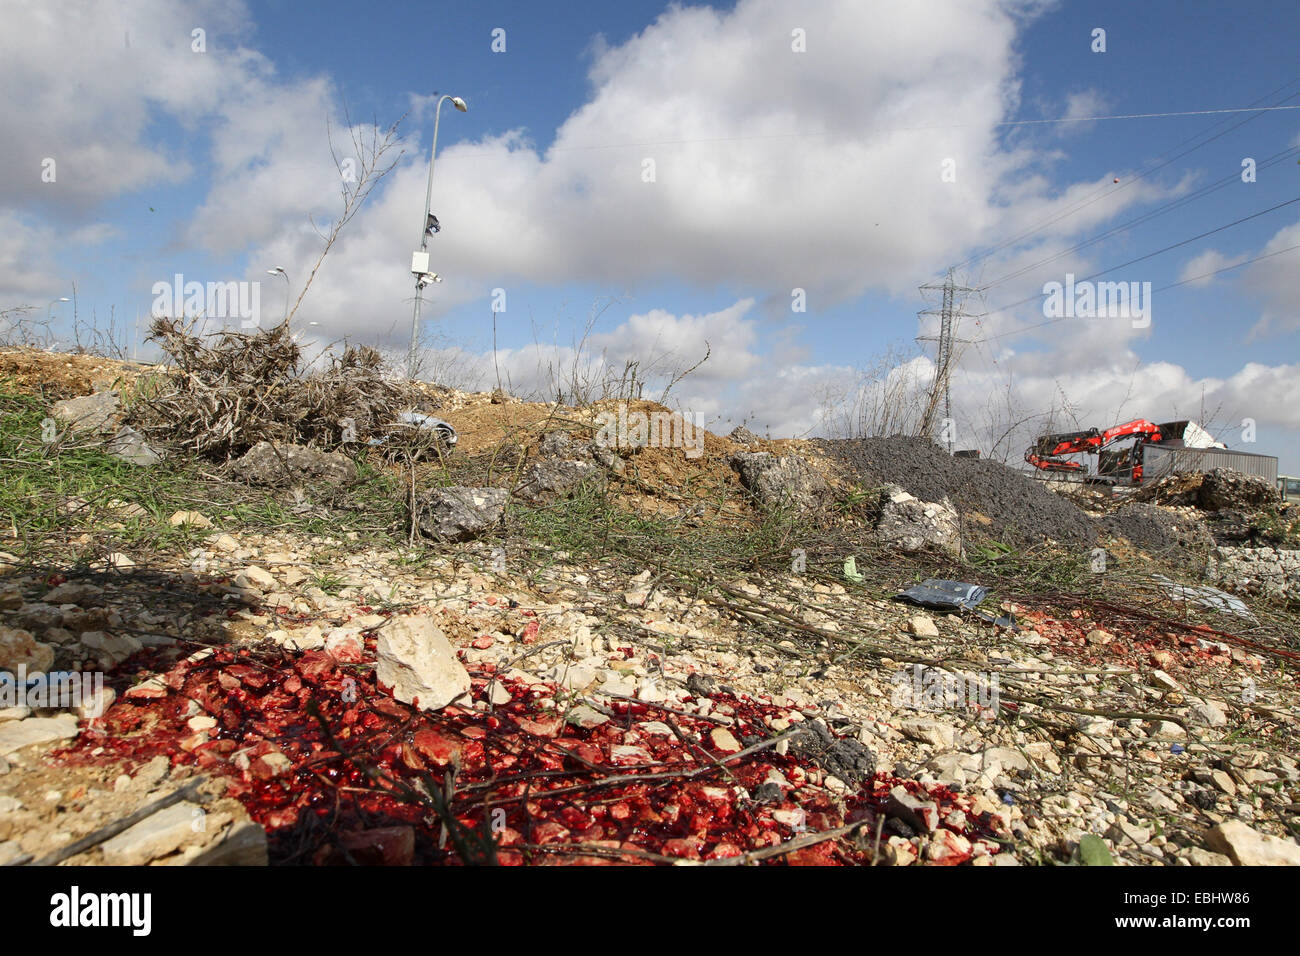 Jerusalem. 1st Dec, 2014. Blood stains are seen on the site of an alleged stabbing attack outside the Jewish settlement - Stock Image